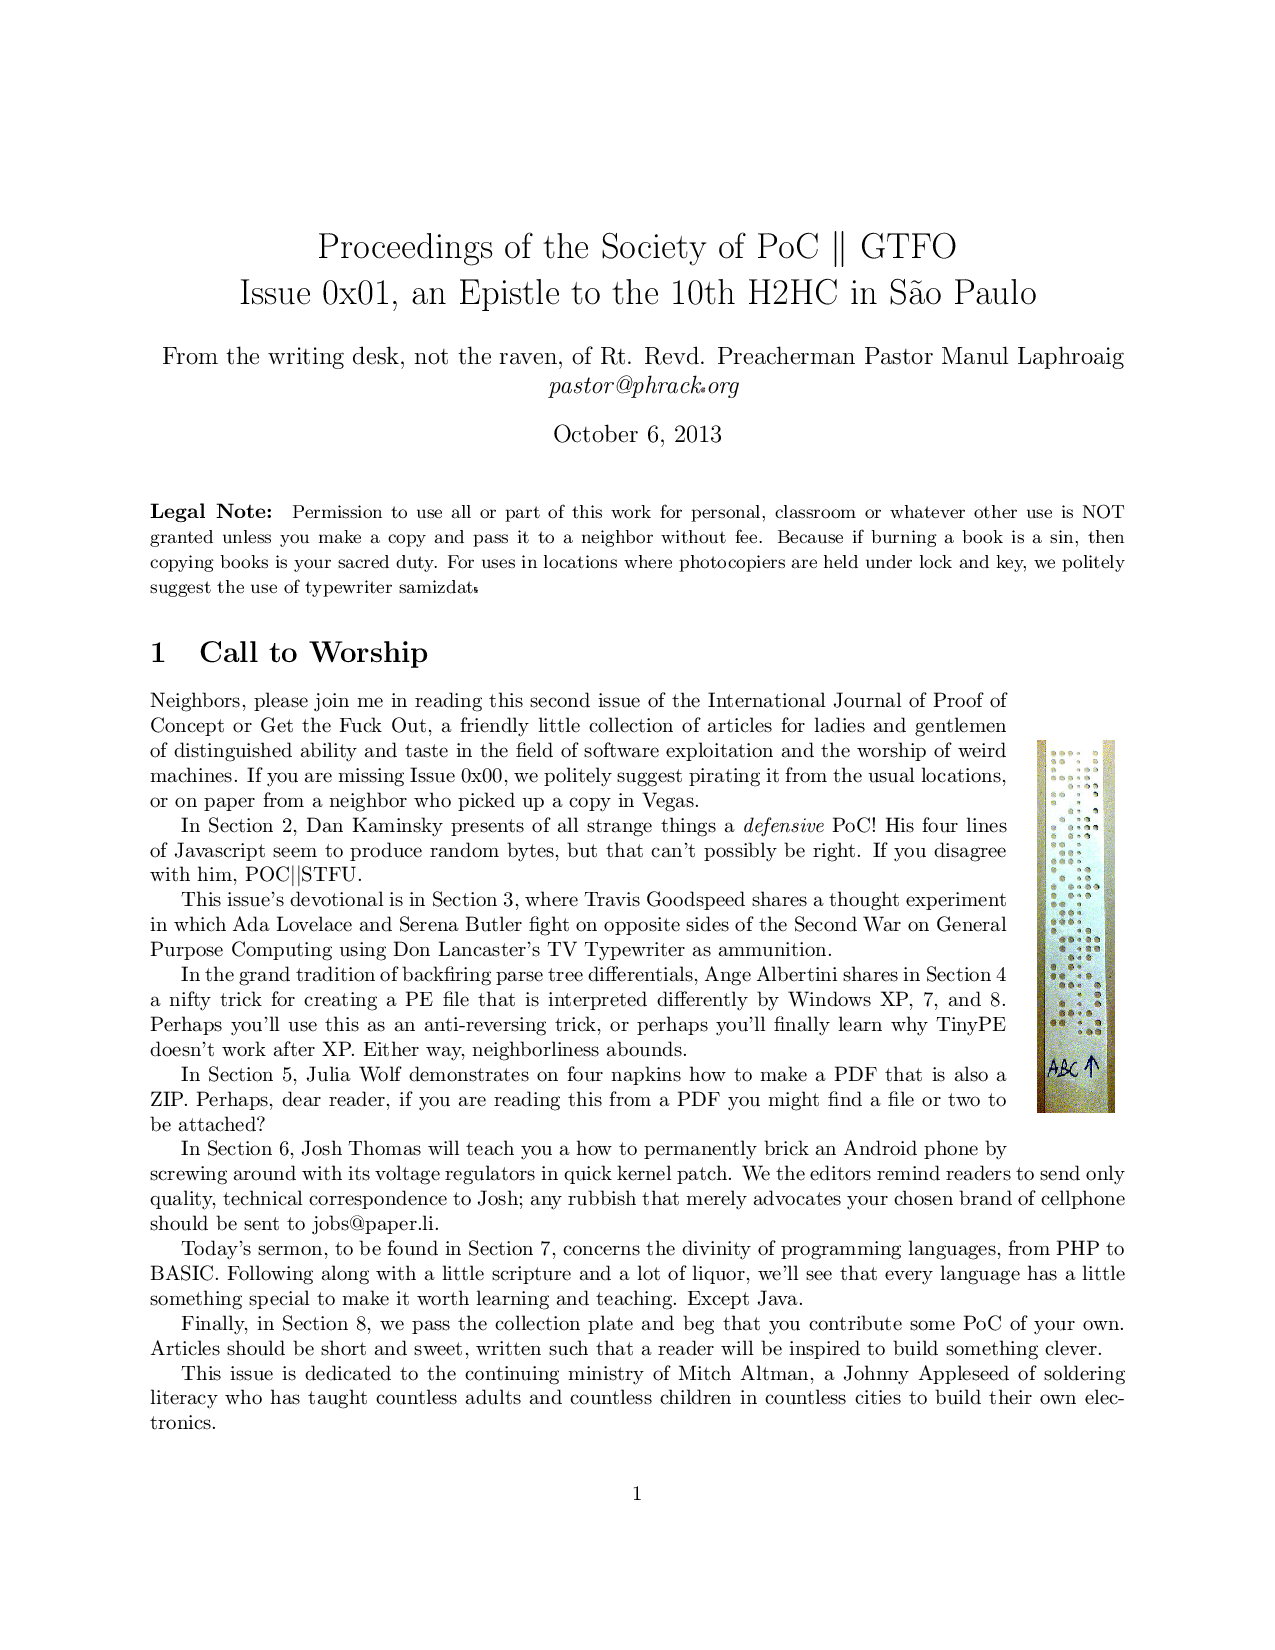 Proceedings of the Society of PoC $\|$ GTFO Issue 0x01, an Epistle to the 10th H2HC in S\~ao Paulo From the writing desk, not the raven, of Rt. Revd. Preacherman Pastor Manul Laphroaig